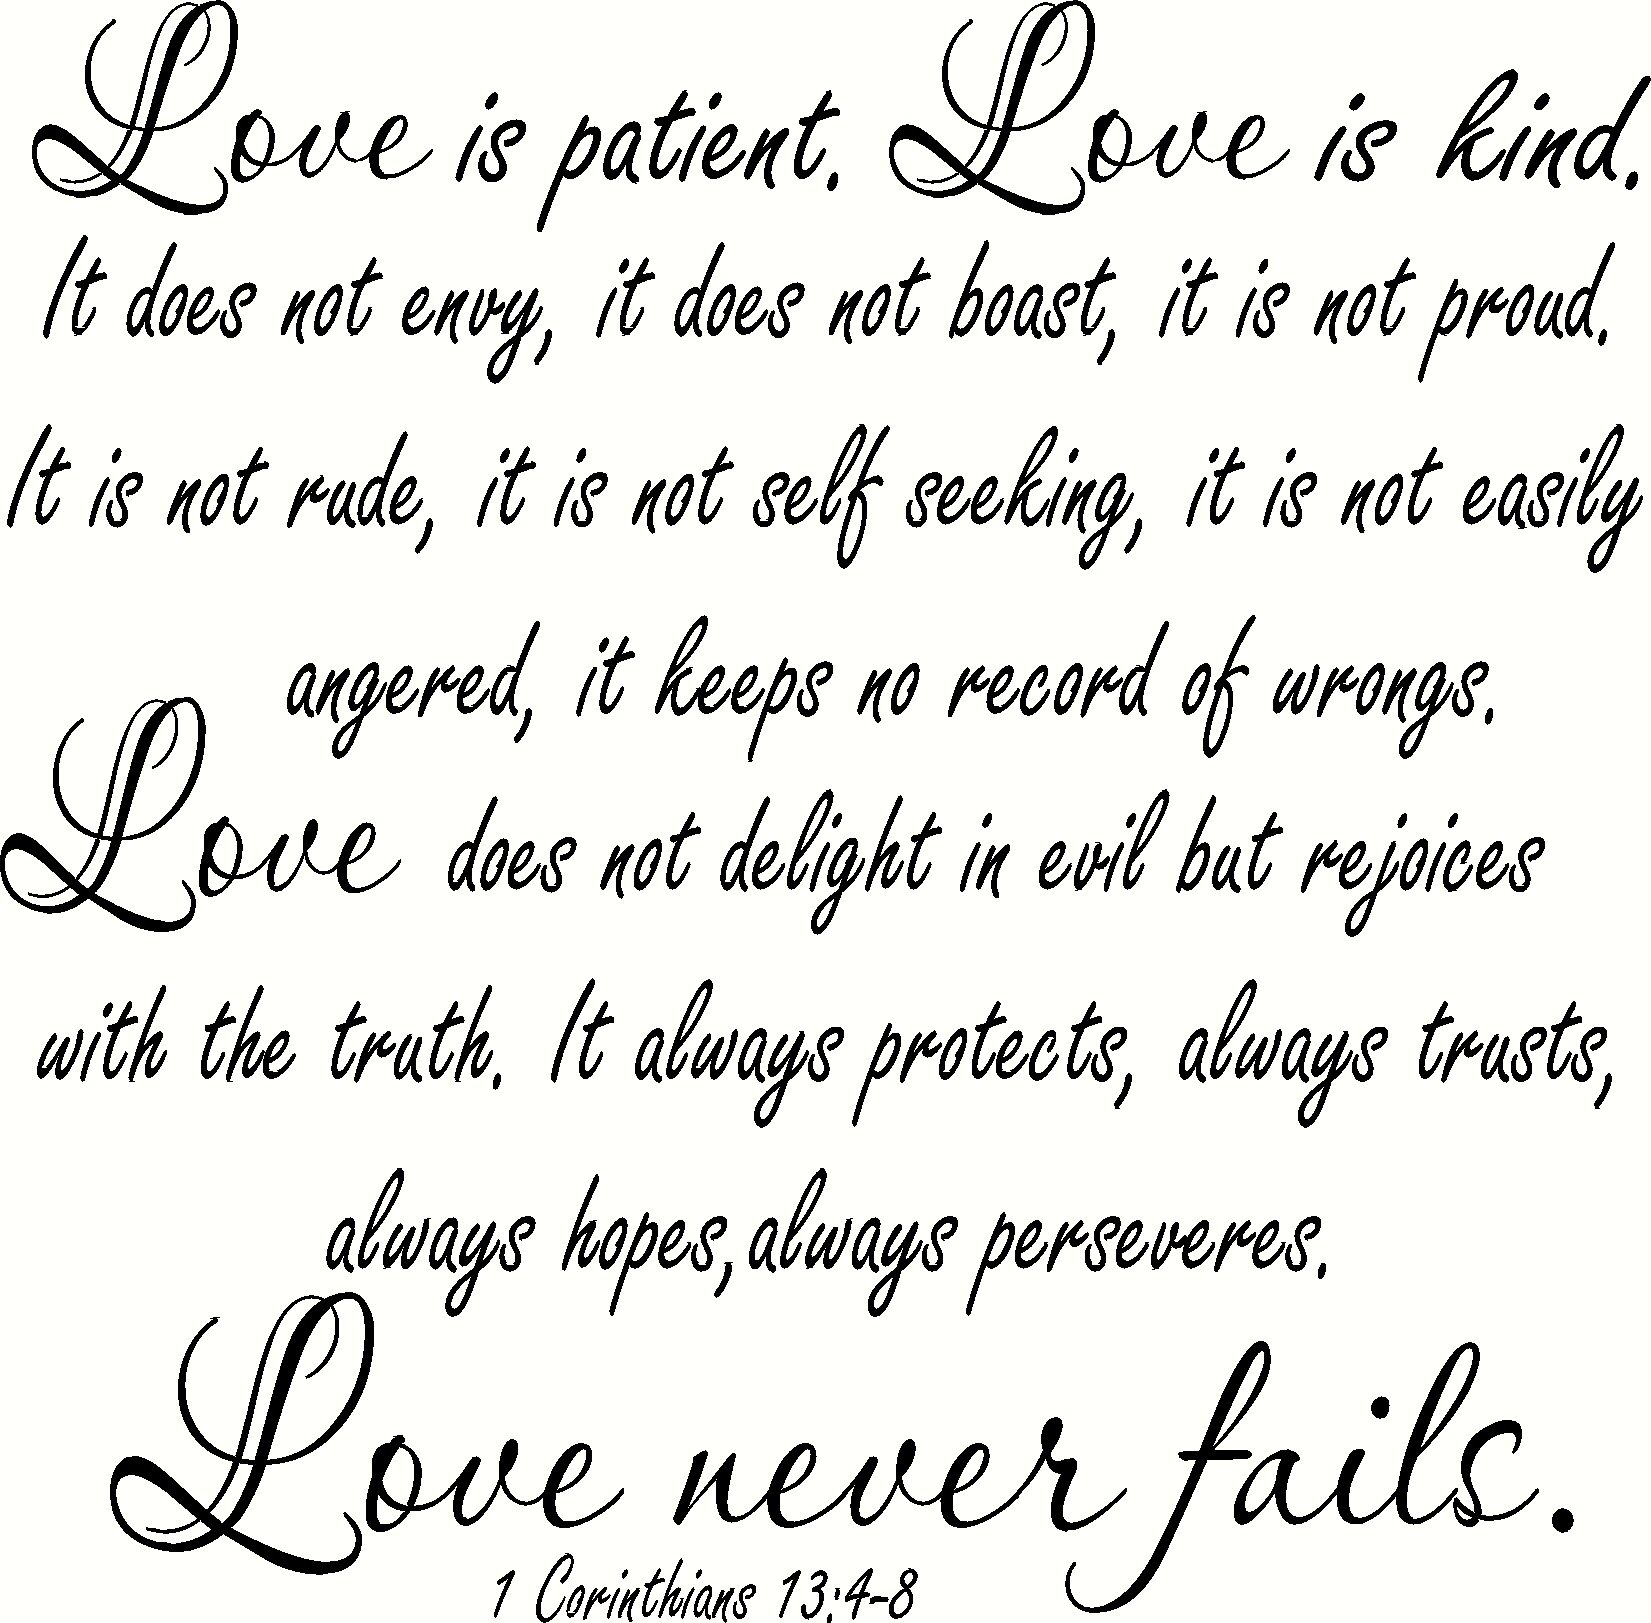 "6 Corinthians 63:6-6 V6 66"" x 66"" Large Size, Bible Verse Vinyl Wall Decal  by Scripture Wall Art Love Quotes, Love is patient, Love is Kind, Love"